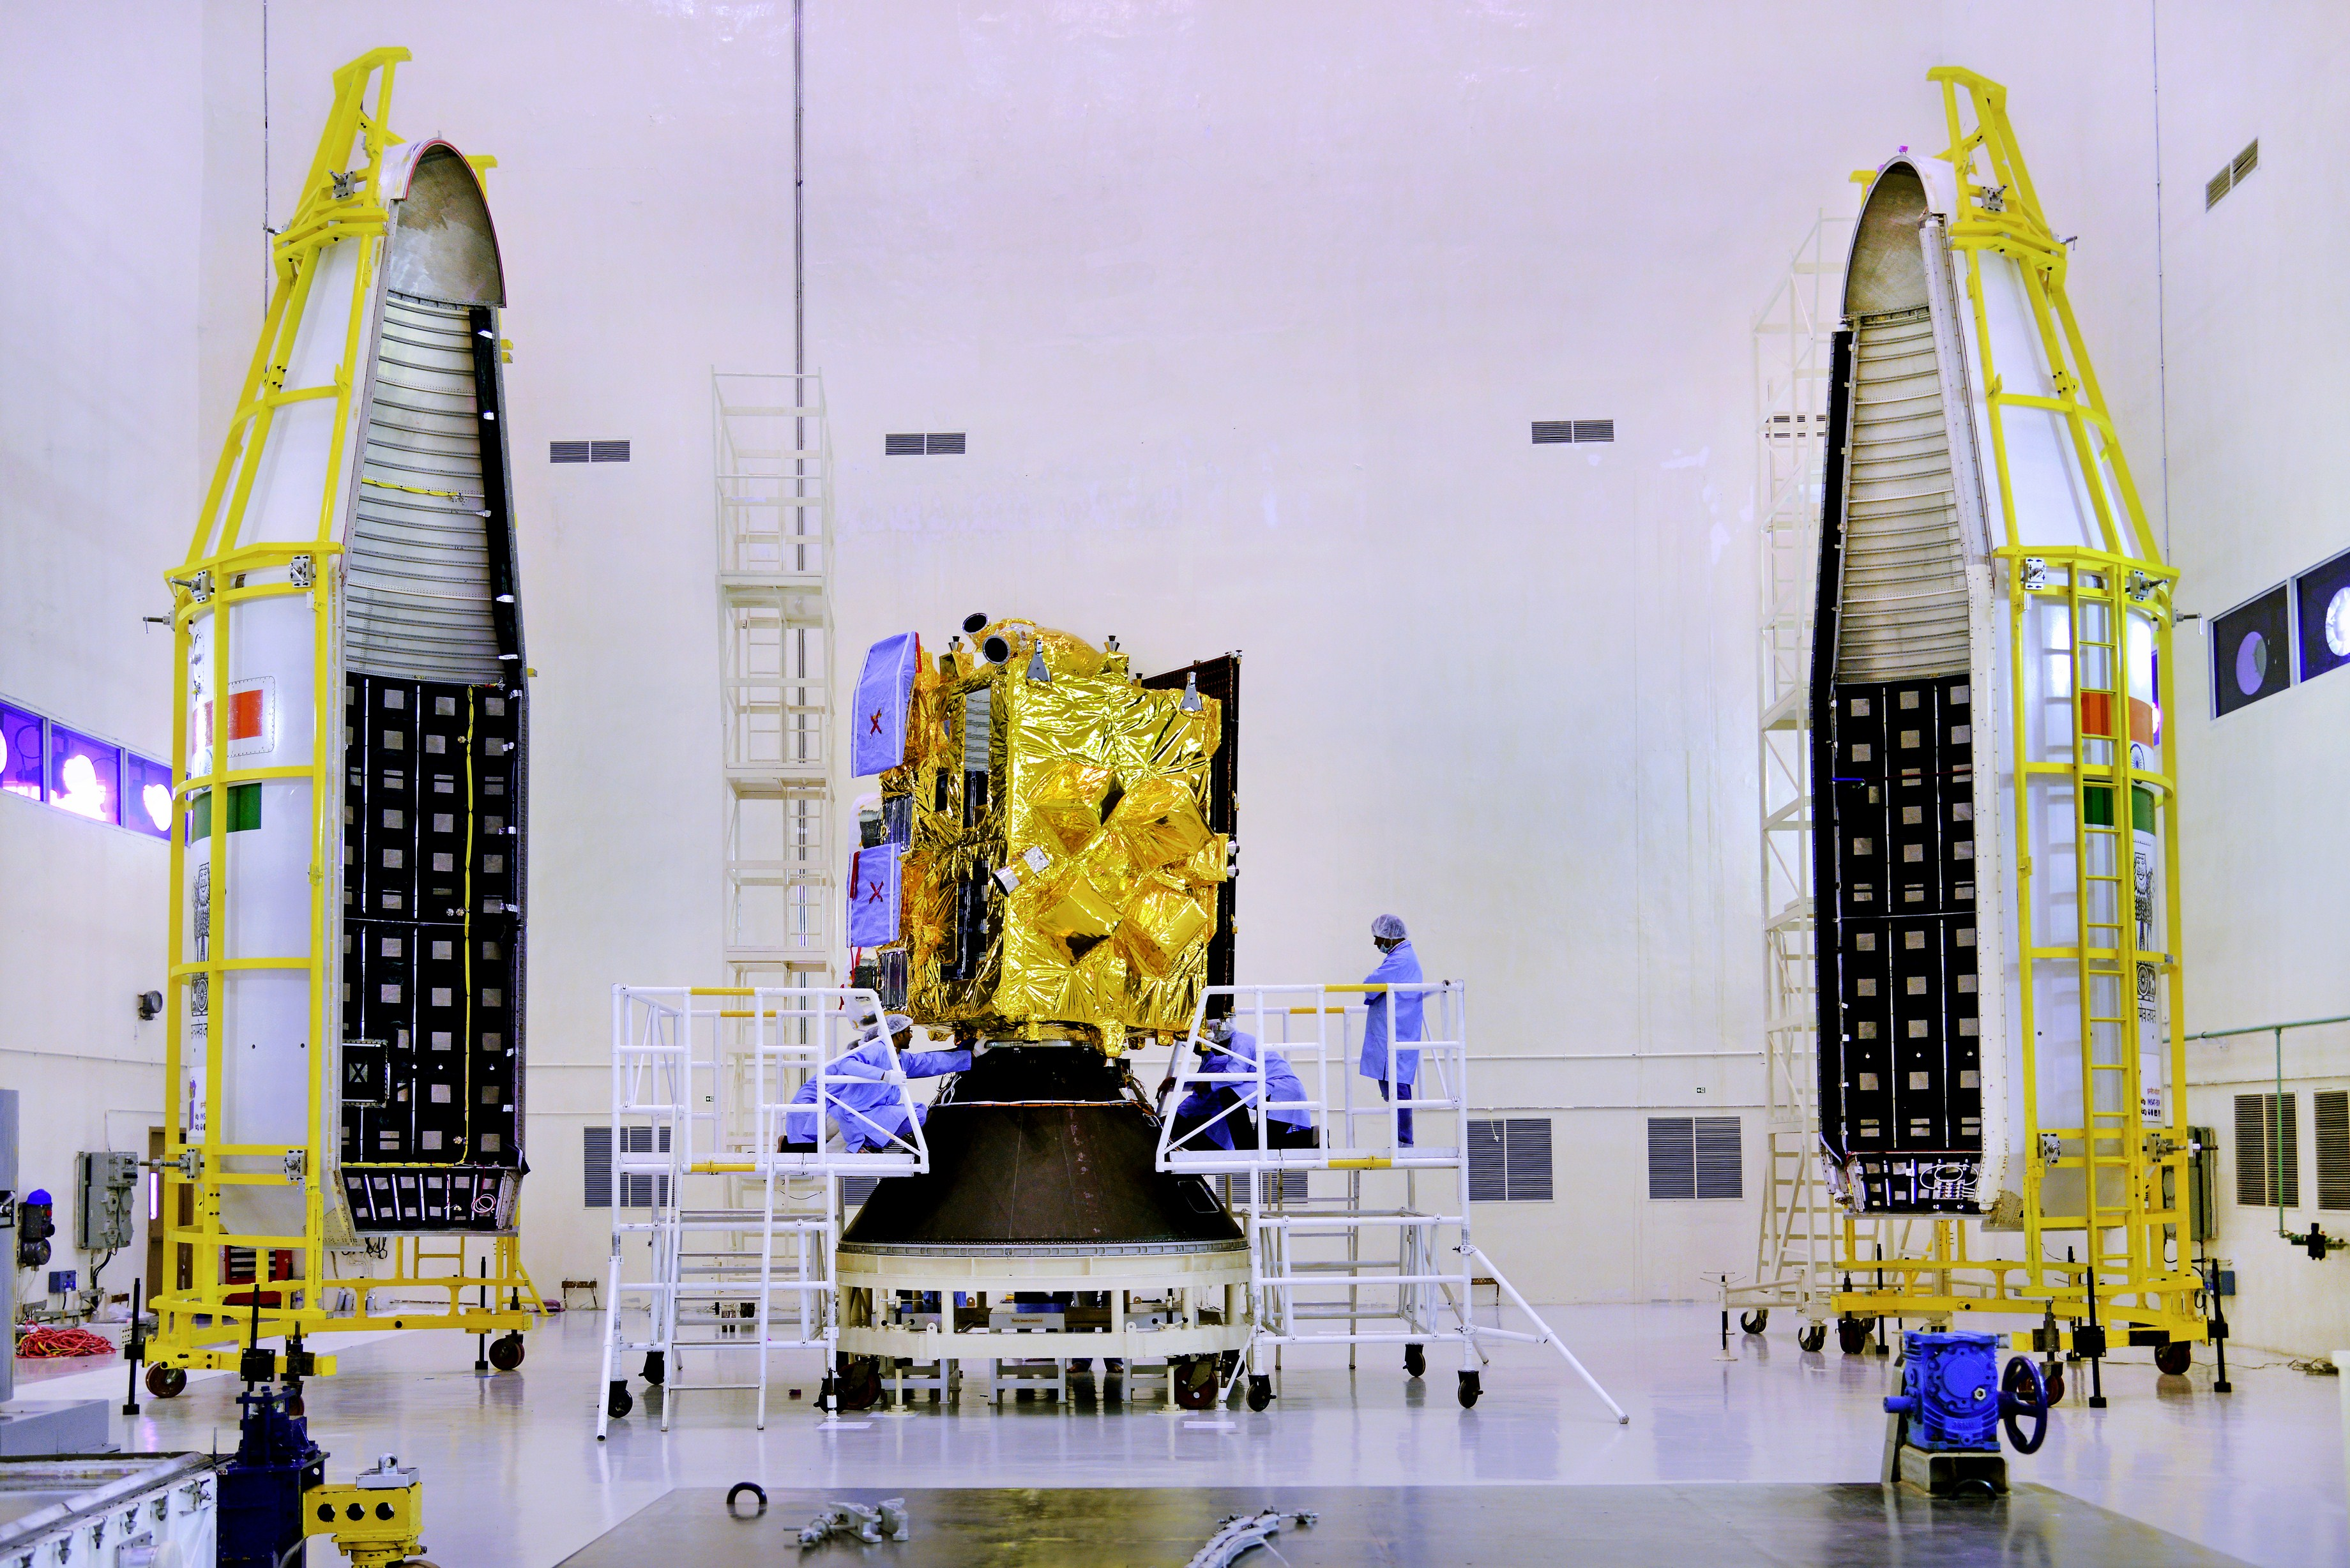 Why Tweeting About ISRO's Success Is a Distraction